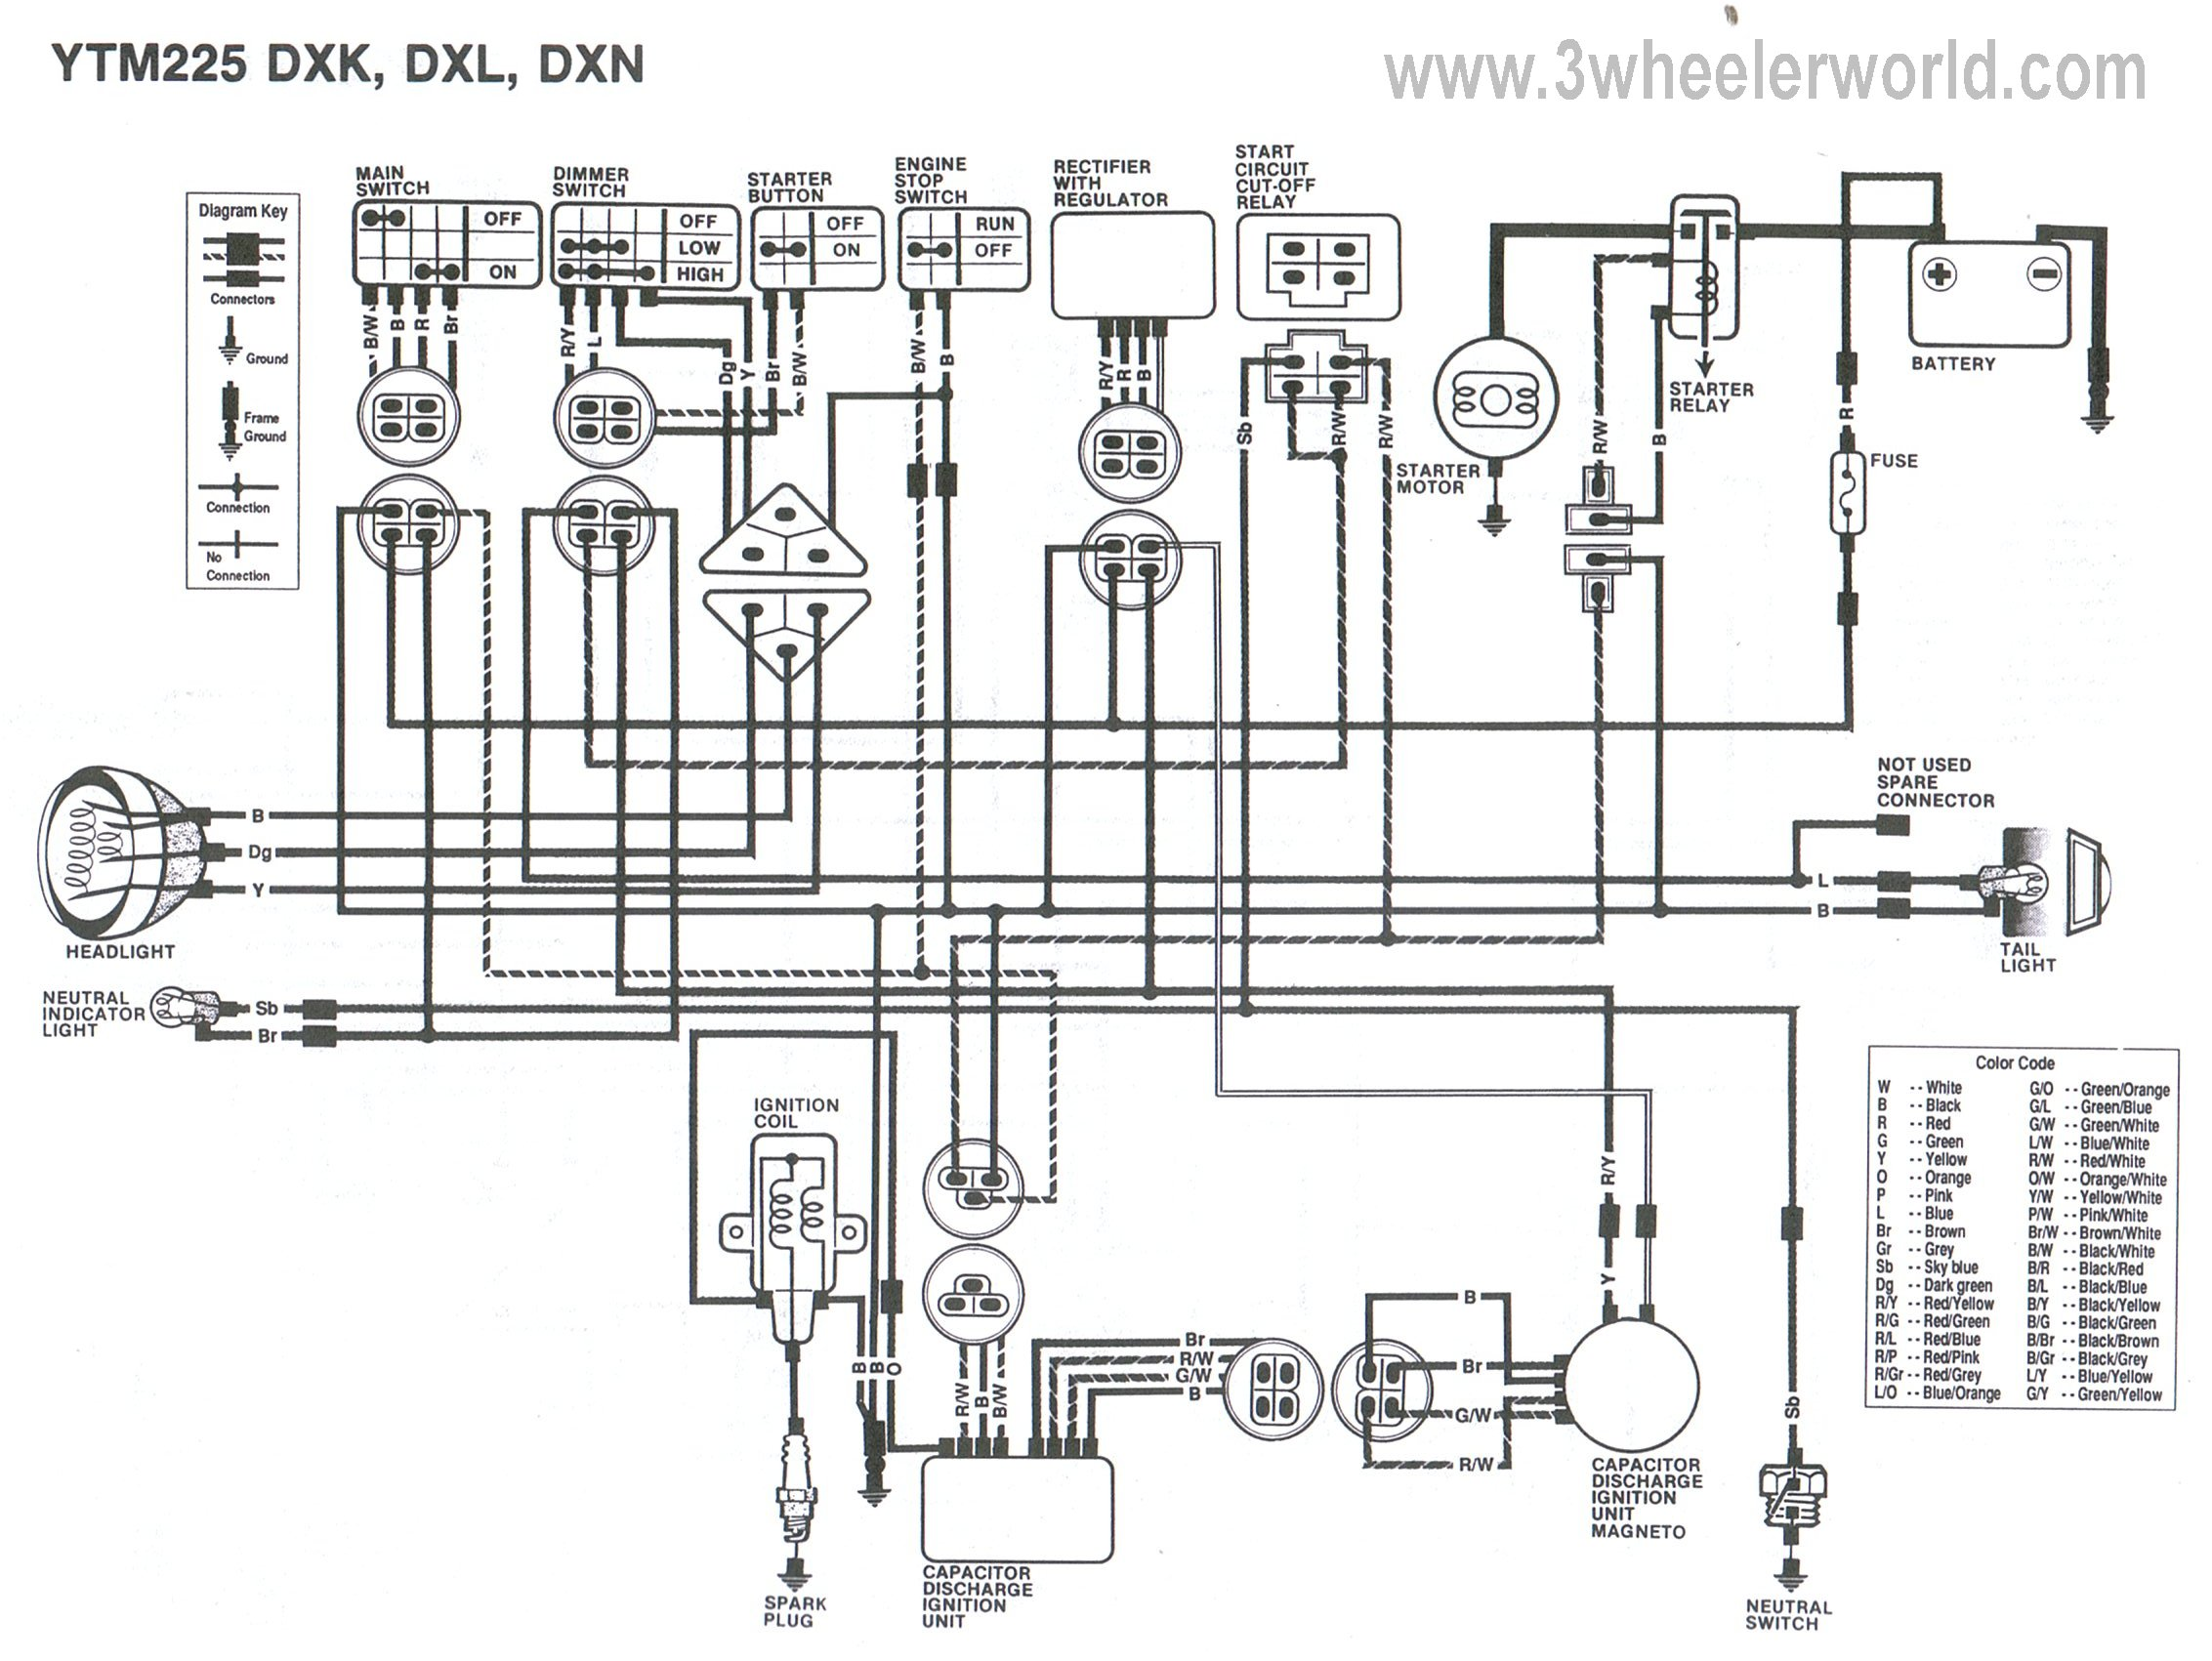 87 yamaha warrior 350 wiring diagram